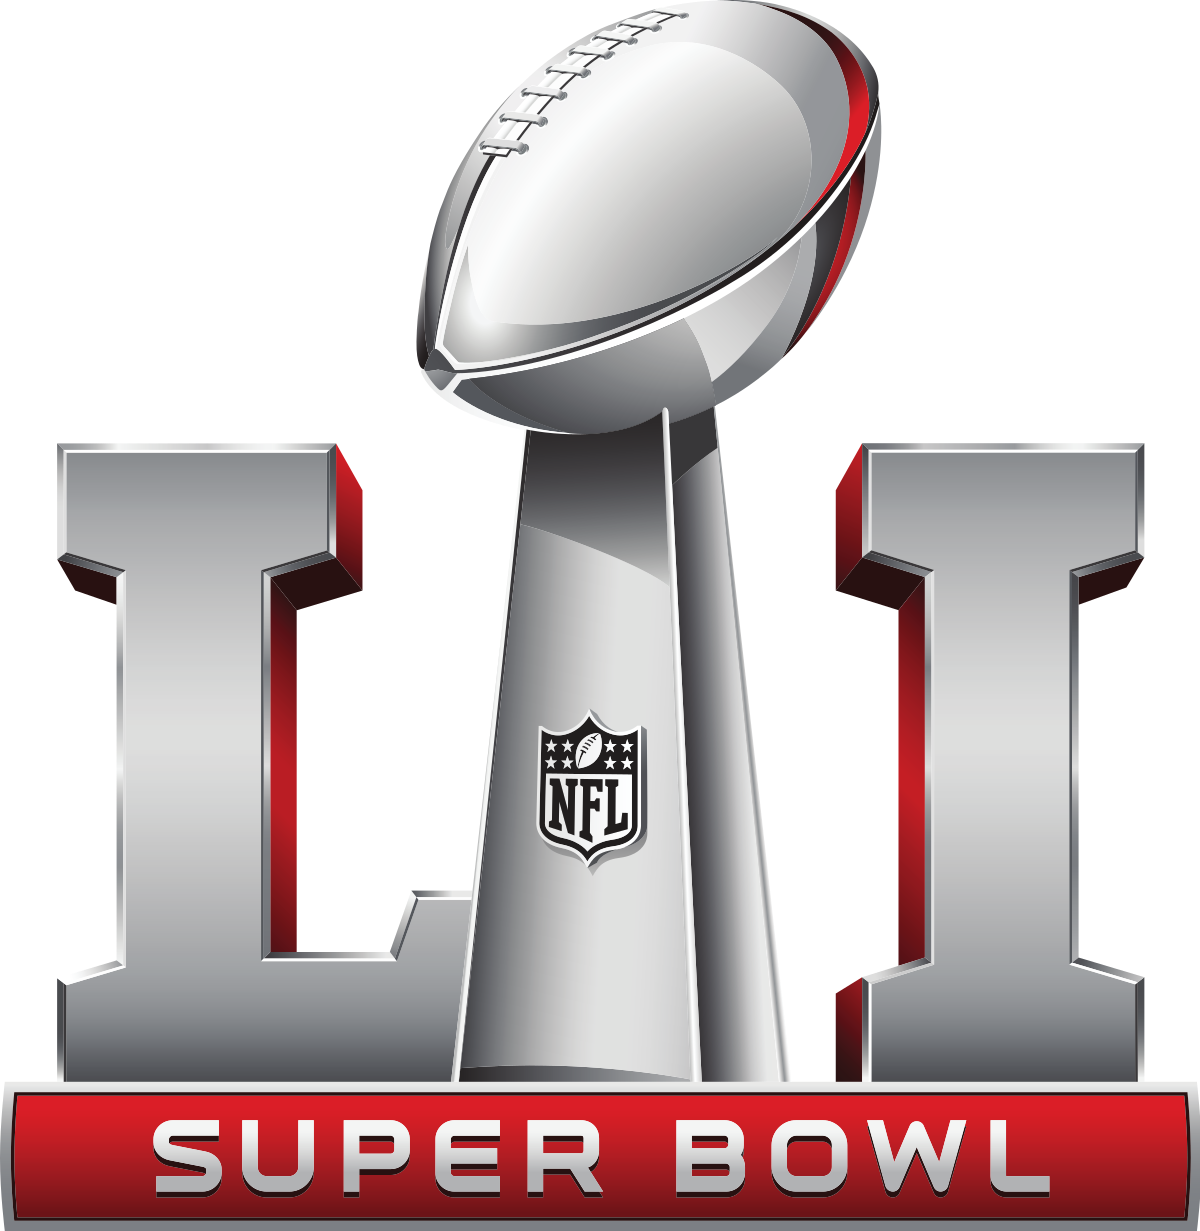 Super bowl 2017 logo png